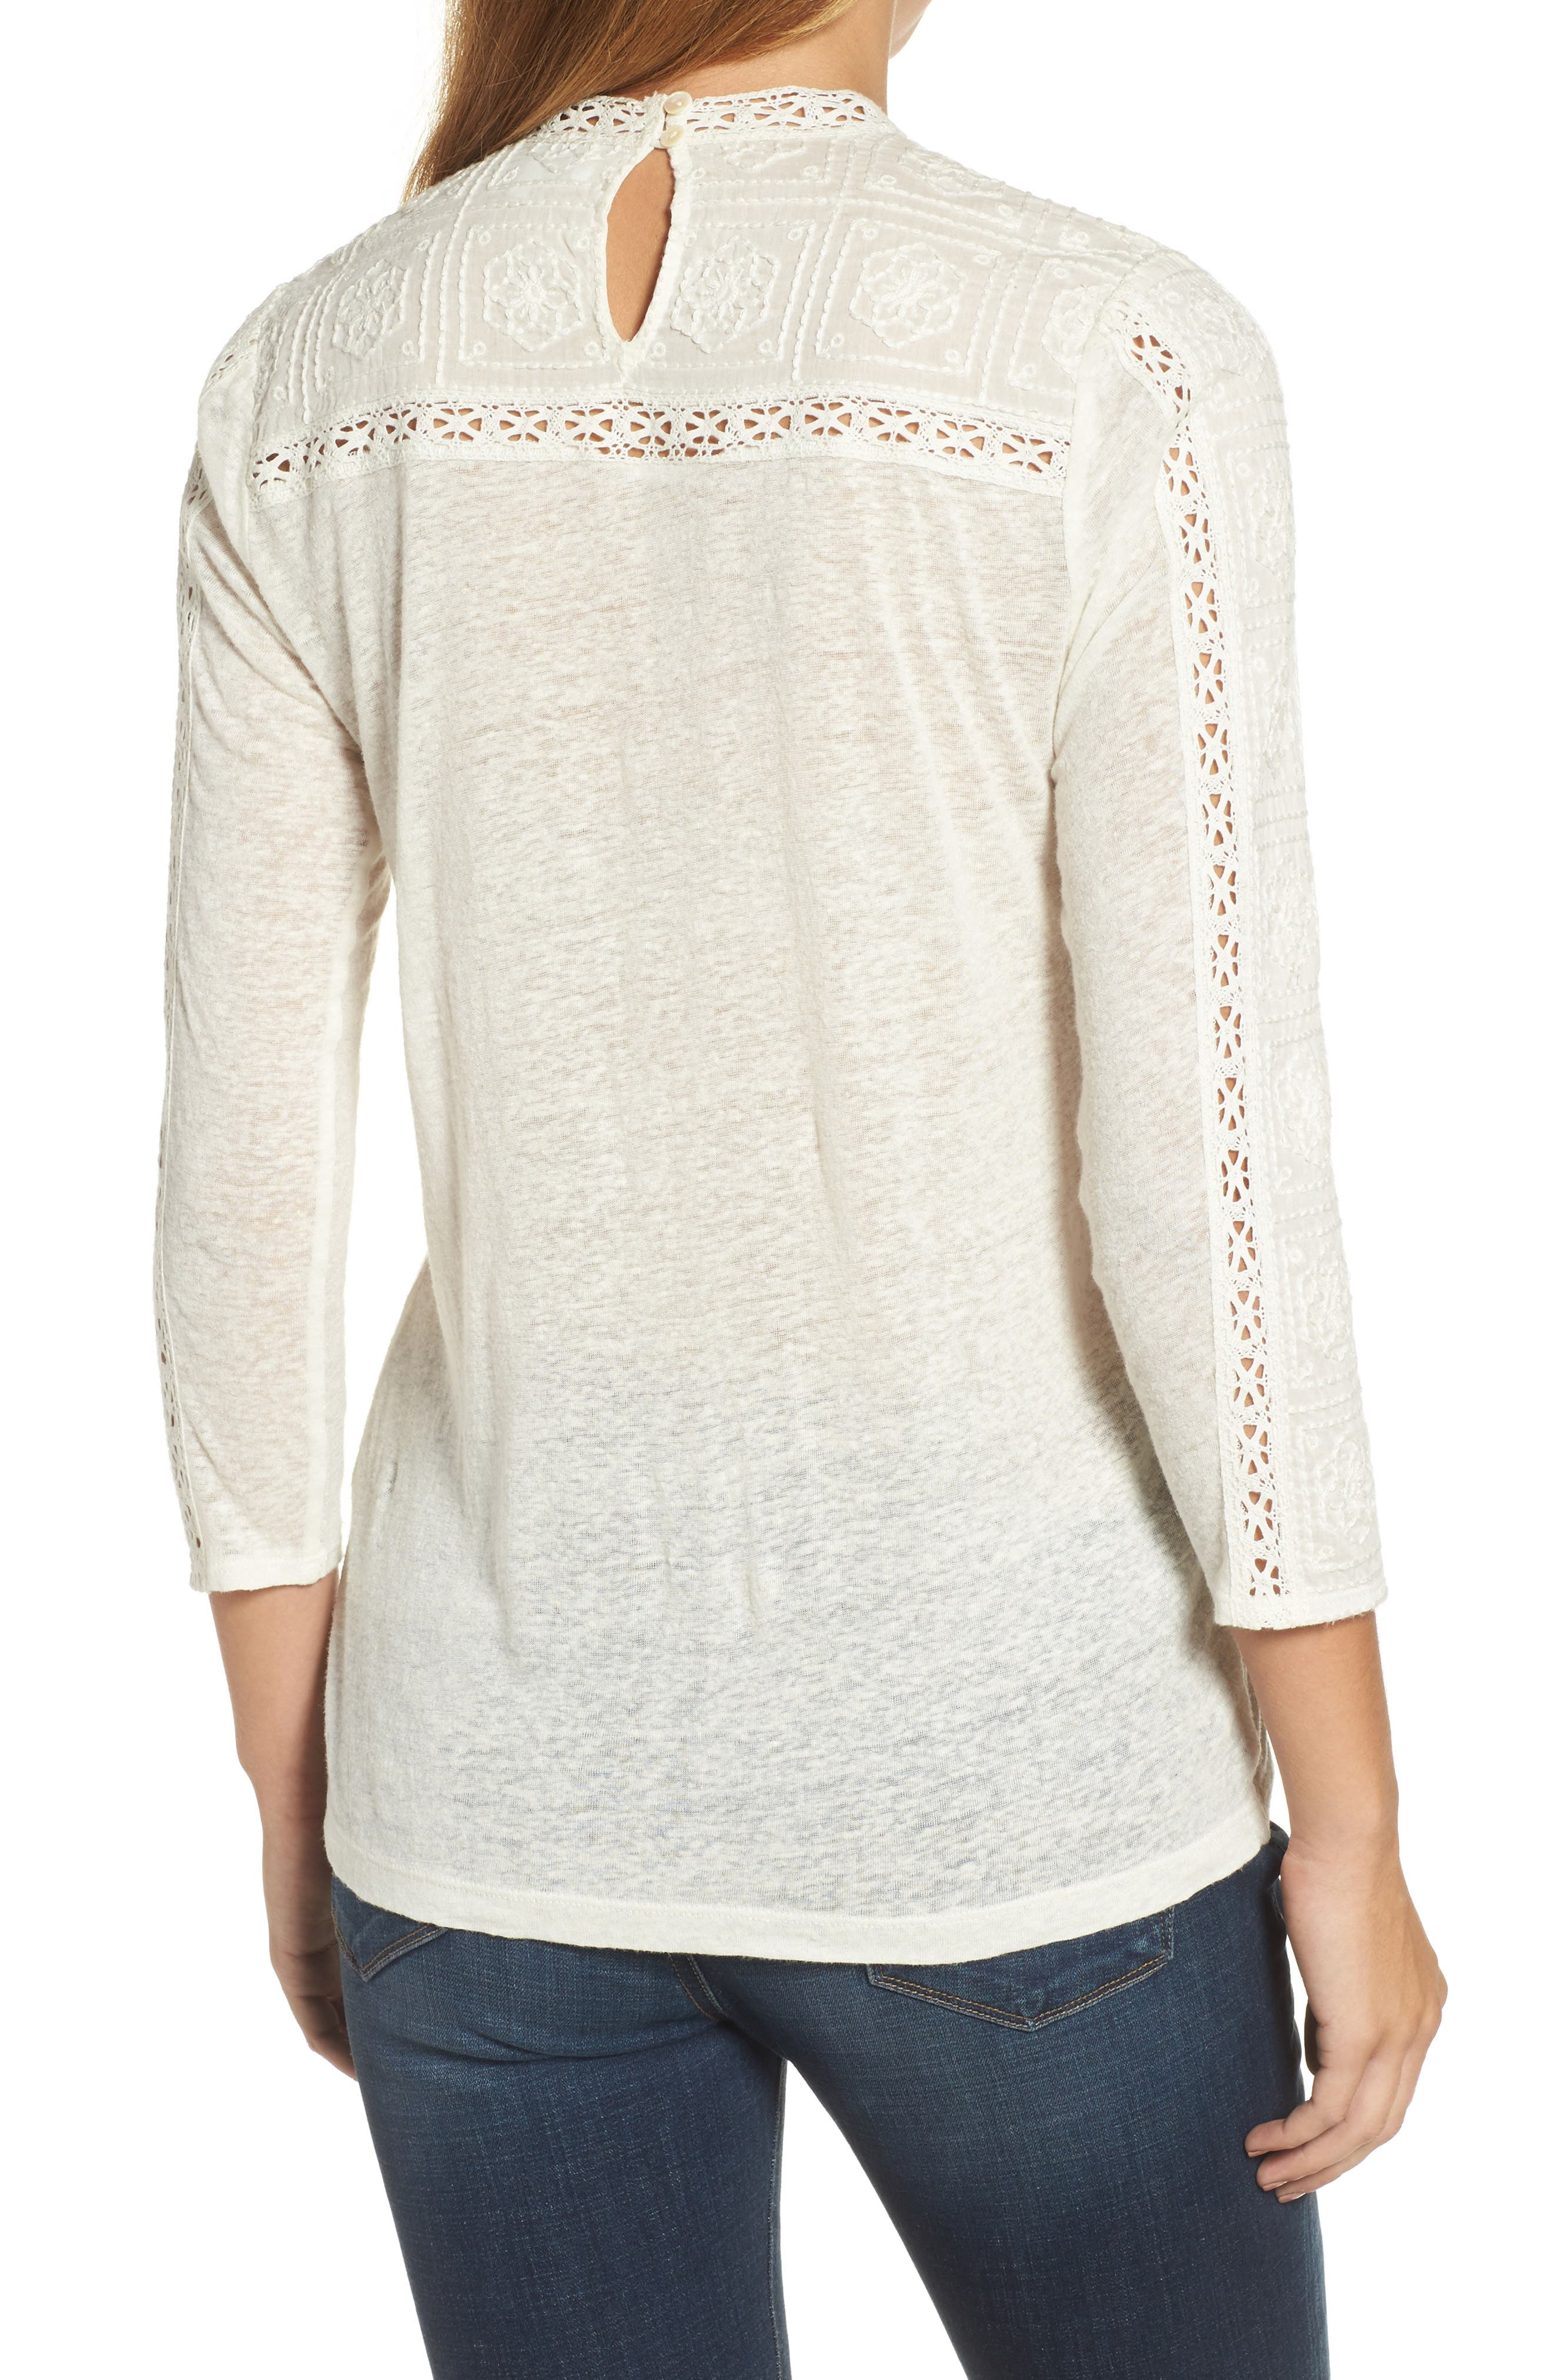 Embroidered Eyelet Trim Top,                             Alternate thumbnail 2, color,                             900